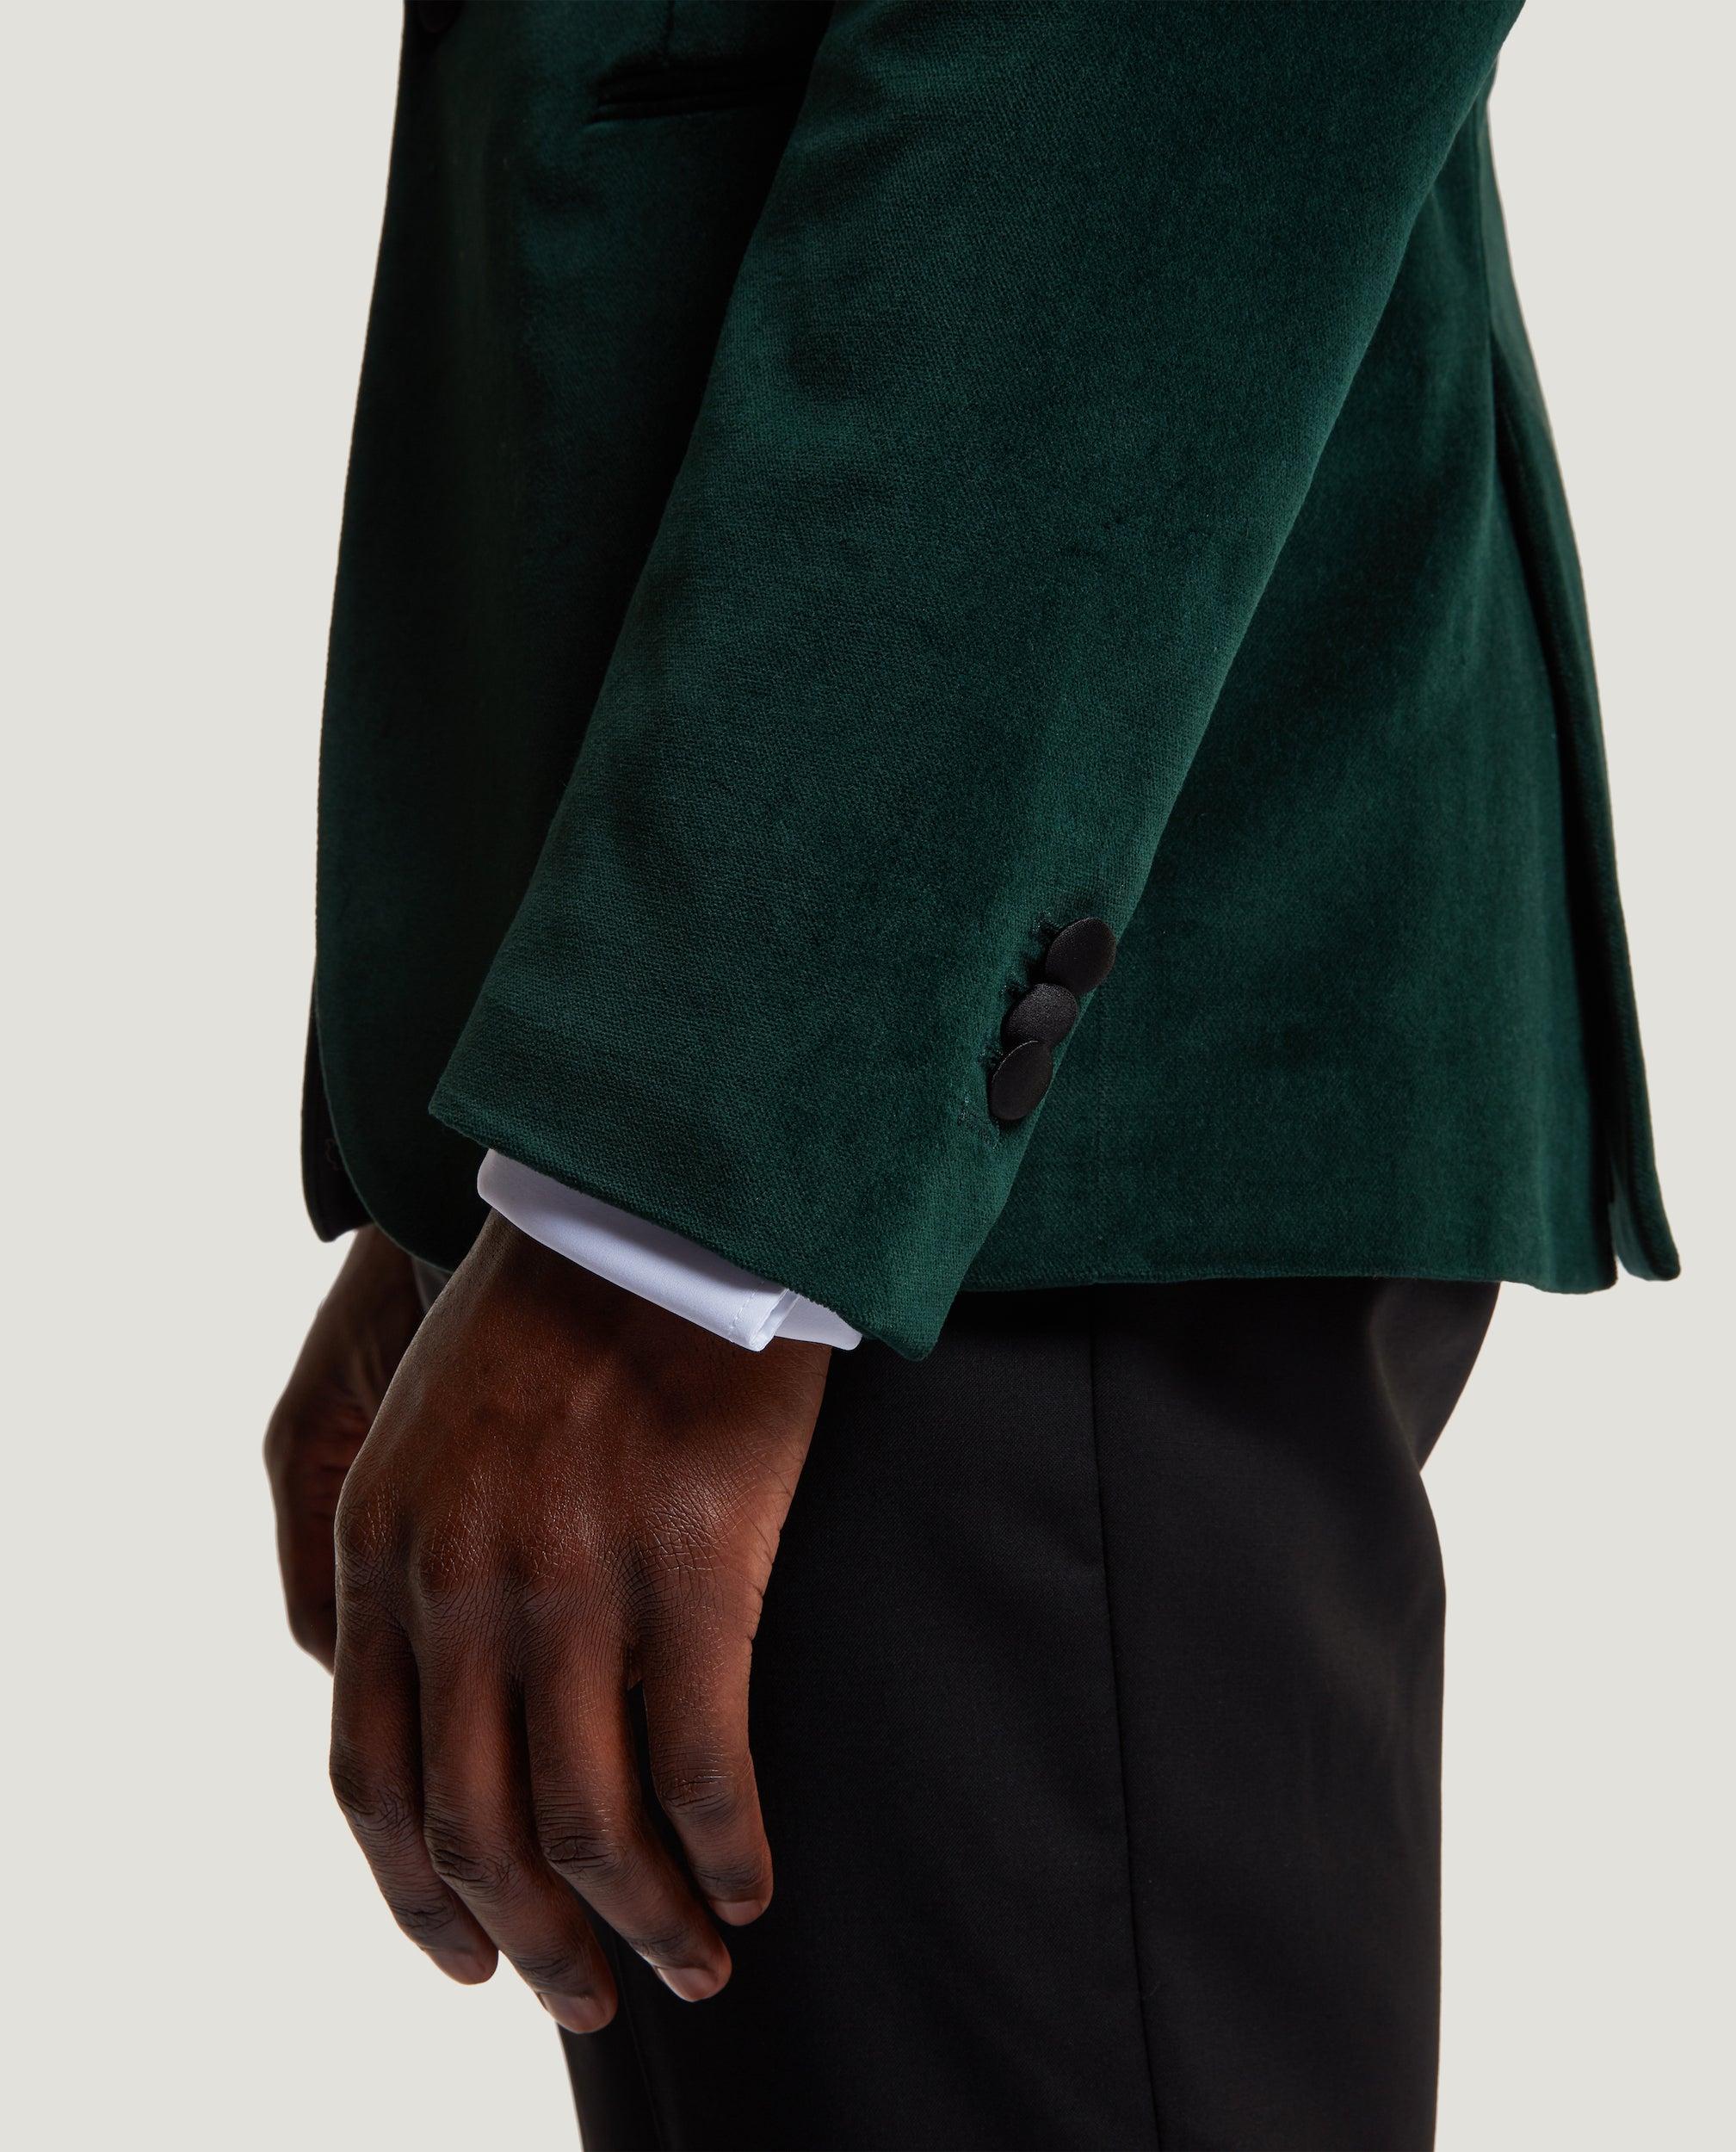 ANDER Constructed Tuxedo Blazer | MR PORTER EXCLUSIVE